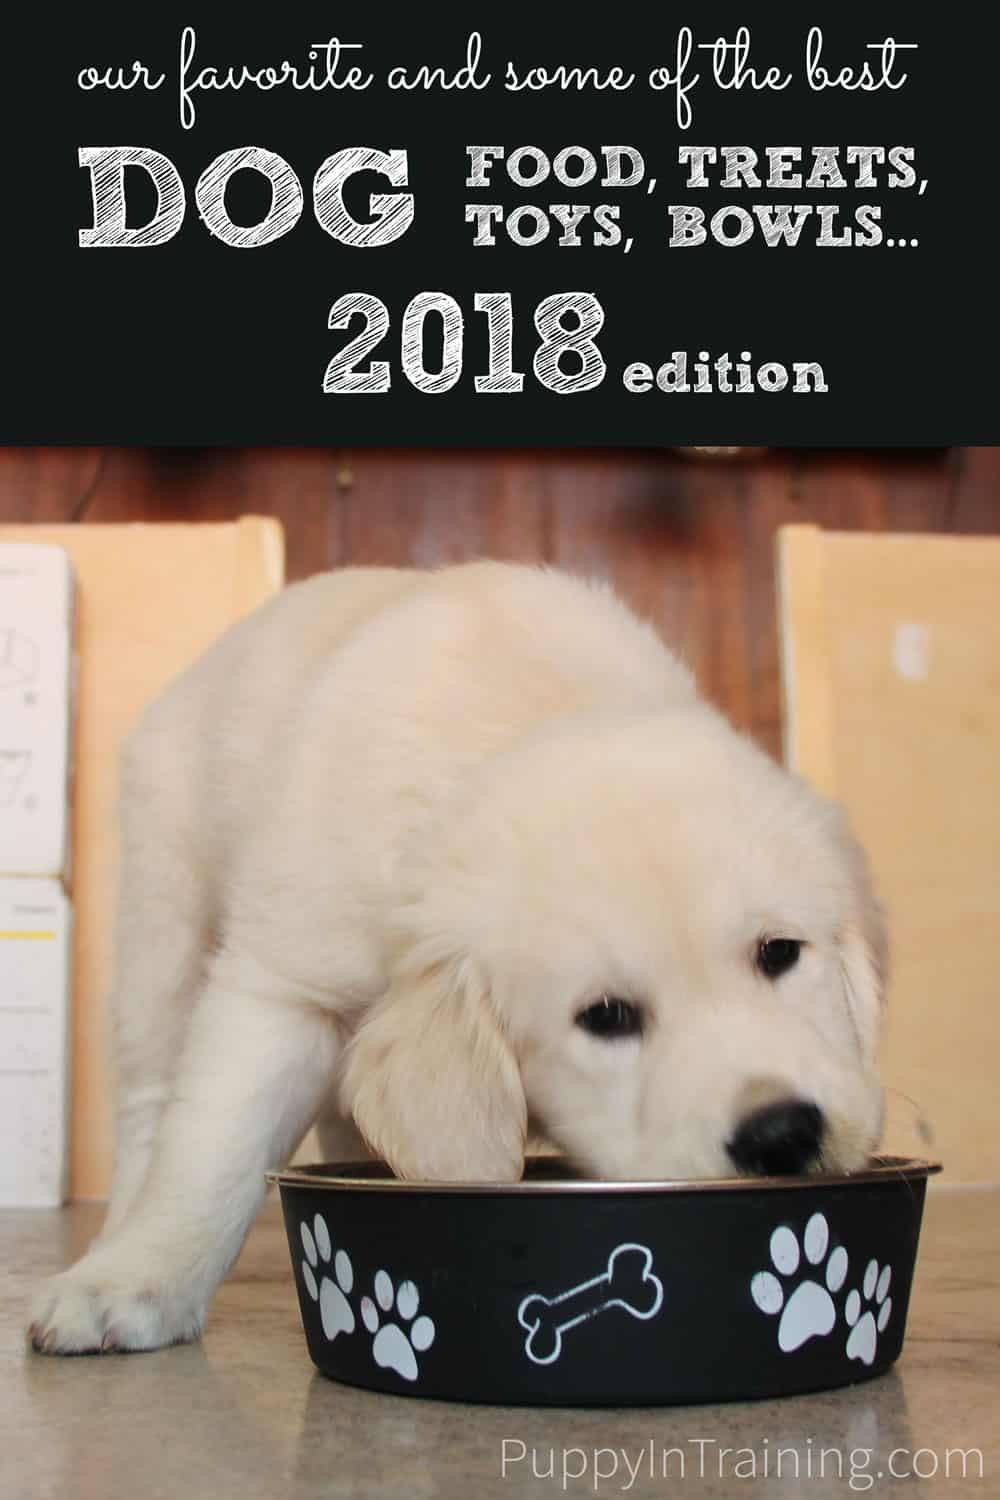 Our favorite and some of the best dog food, treats, toys, and other dog products for 2018.